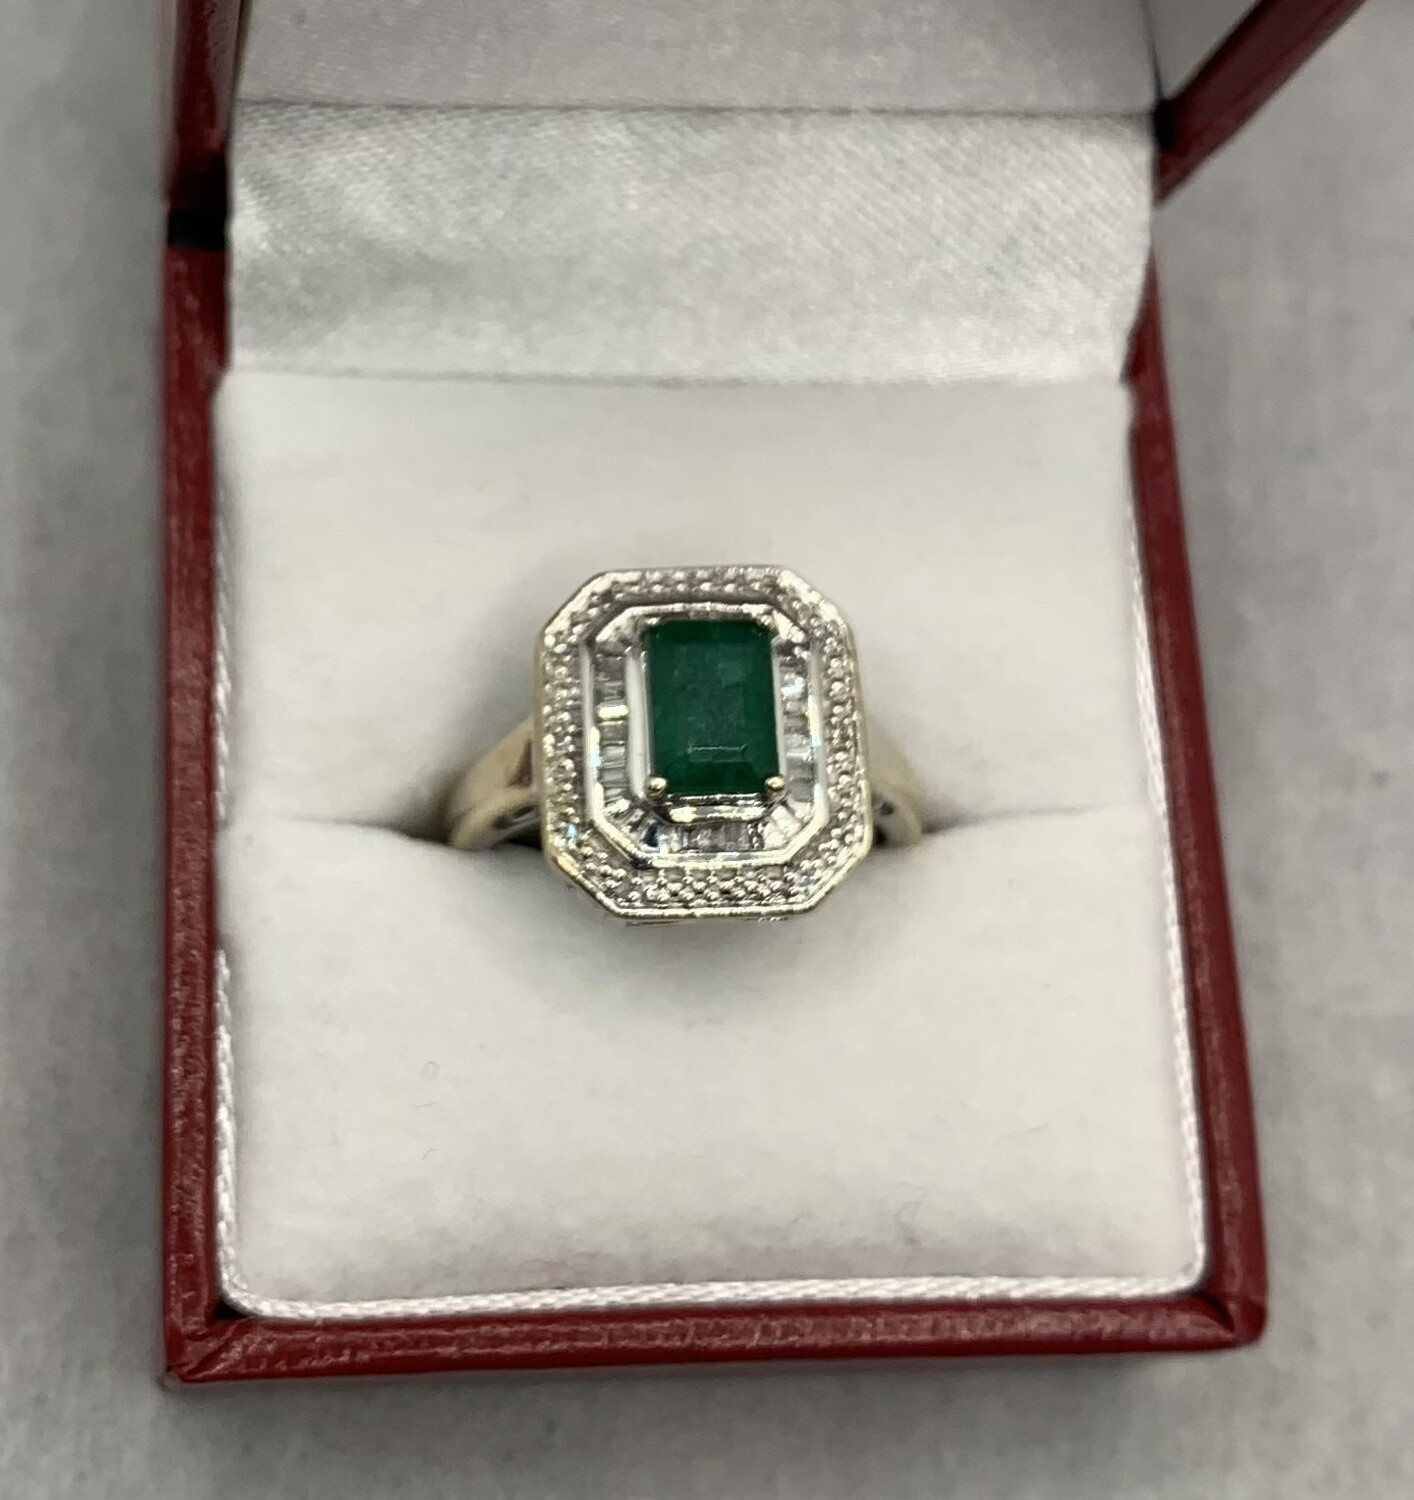 Emerald Cut Genuine Emerald with Diamond Halos